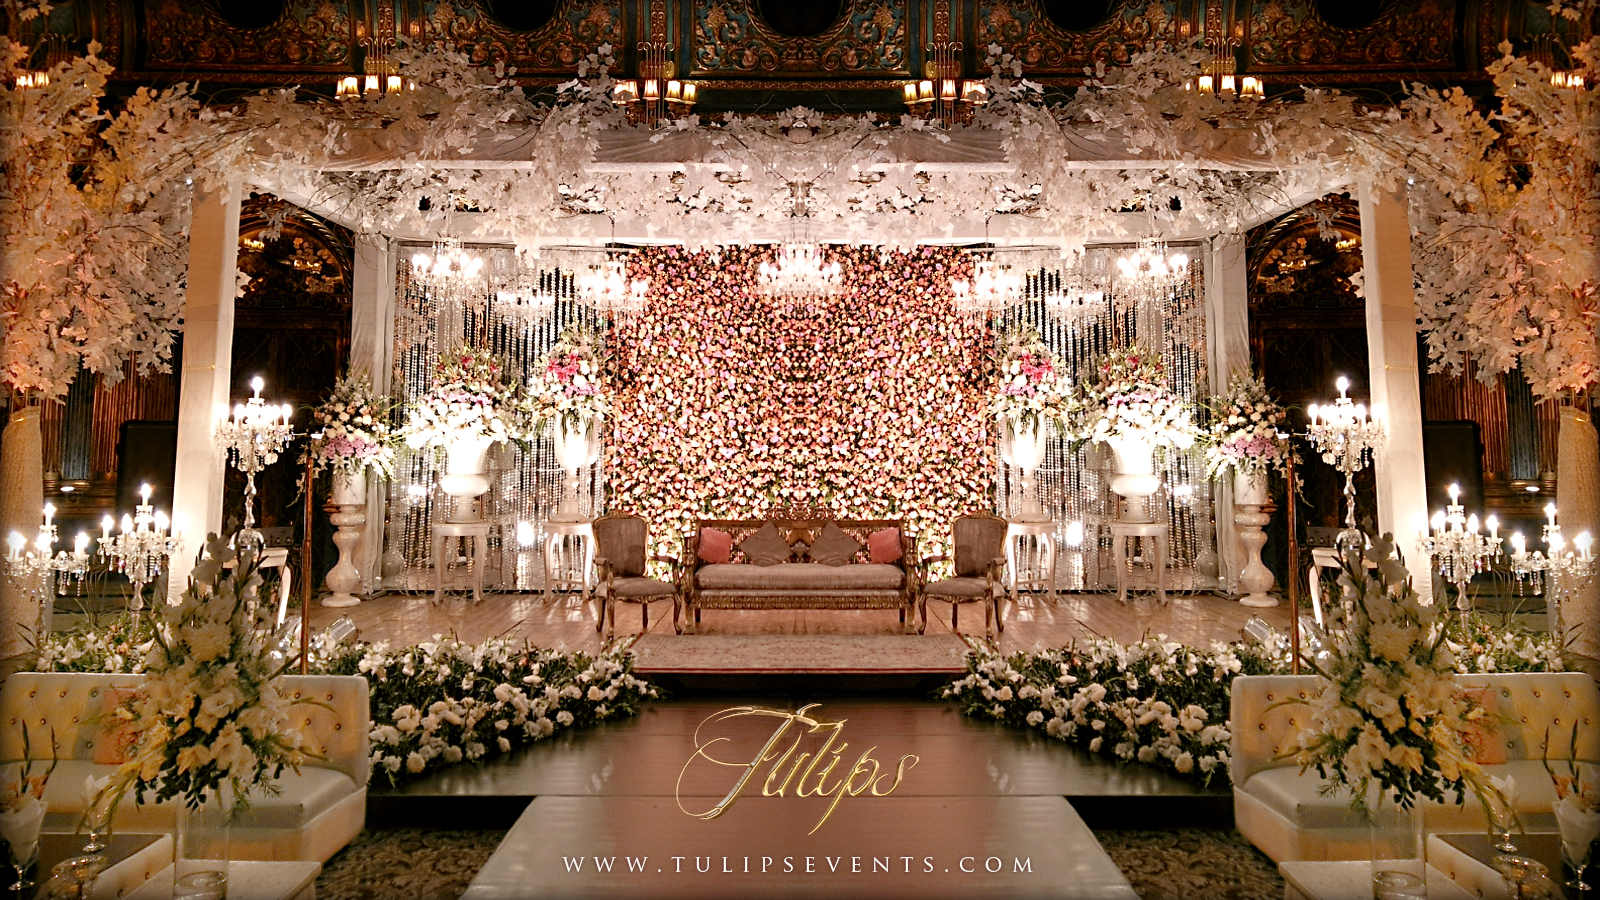 wedding stages decoration tulips events management in lahore pakistan tulips 1162